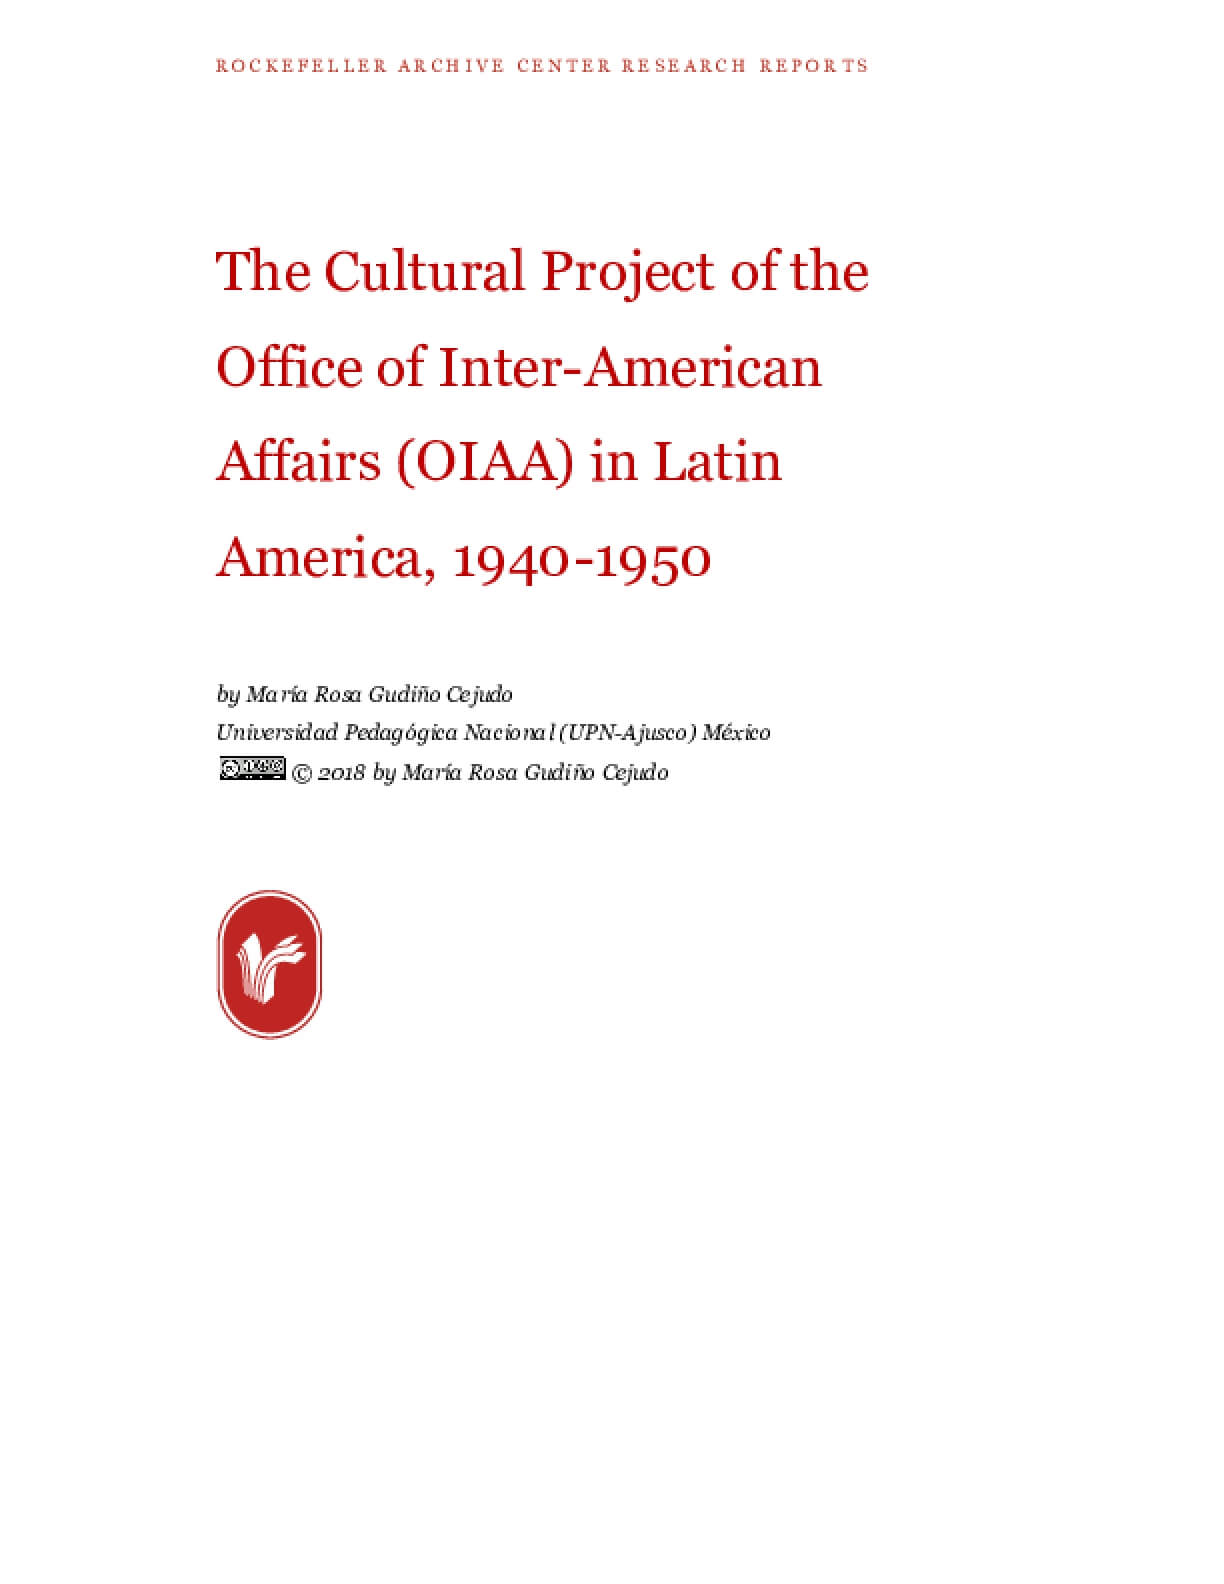 The Cultural Project of the Office of Inter-American Affairs (OIAA) in Latin America, 1940-1950